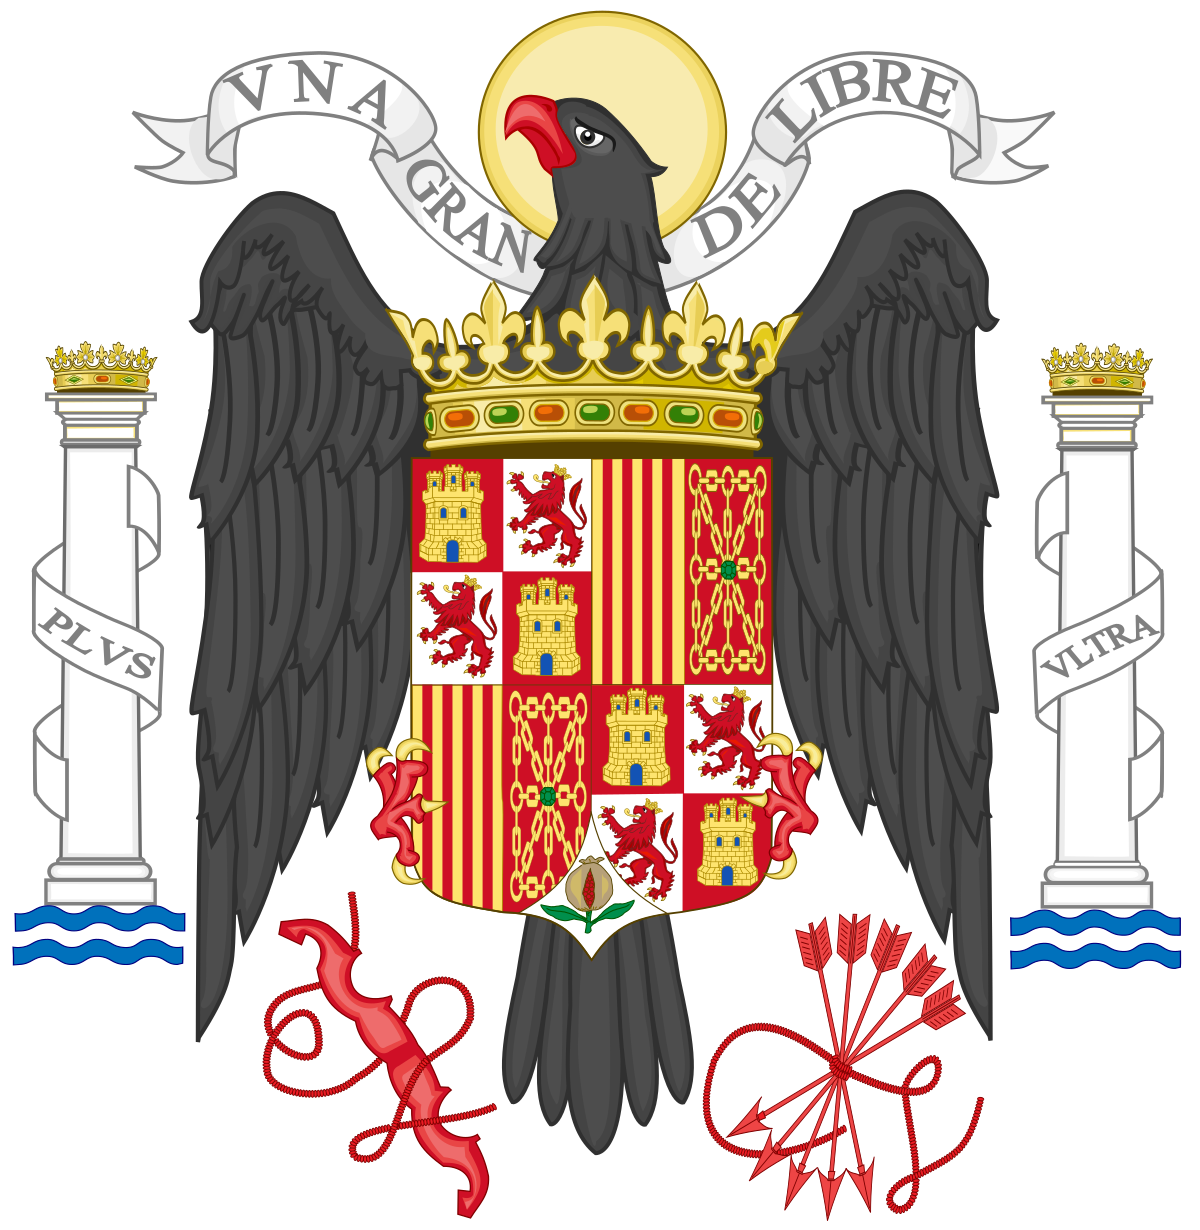 Leader clipart autocracy. Spain during world war